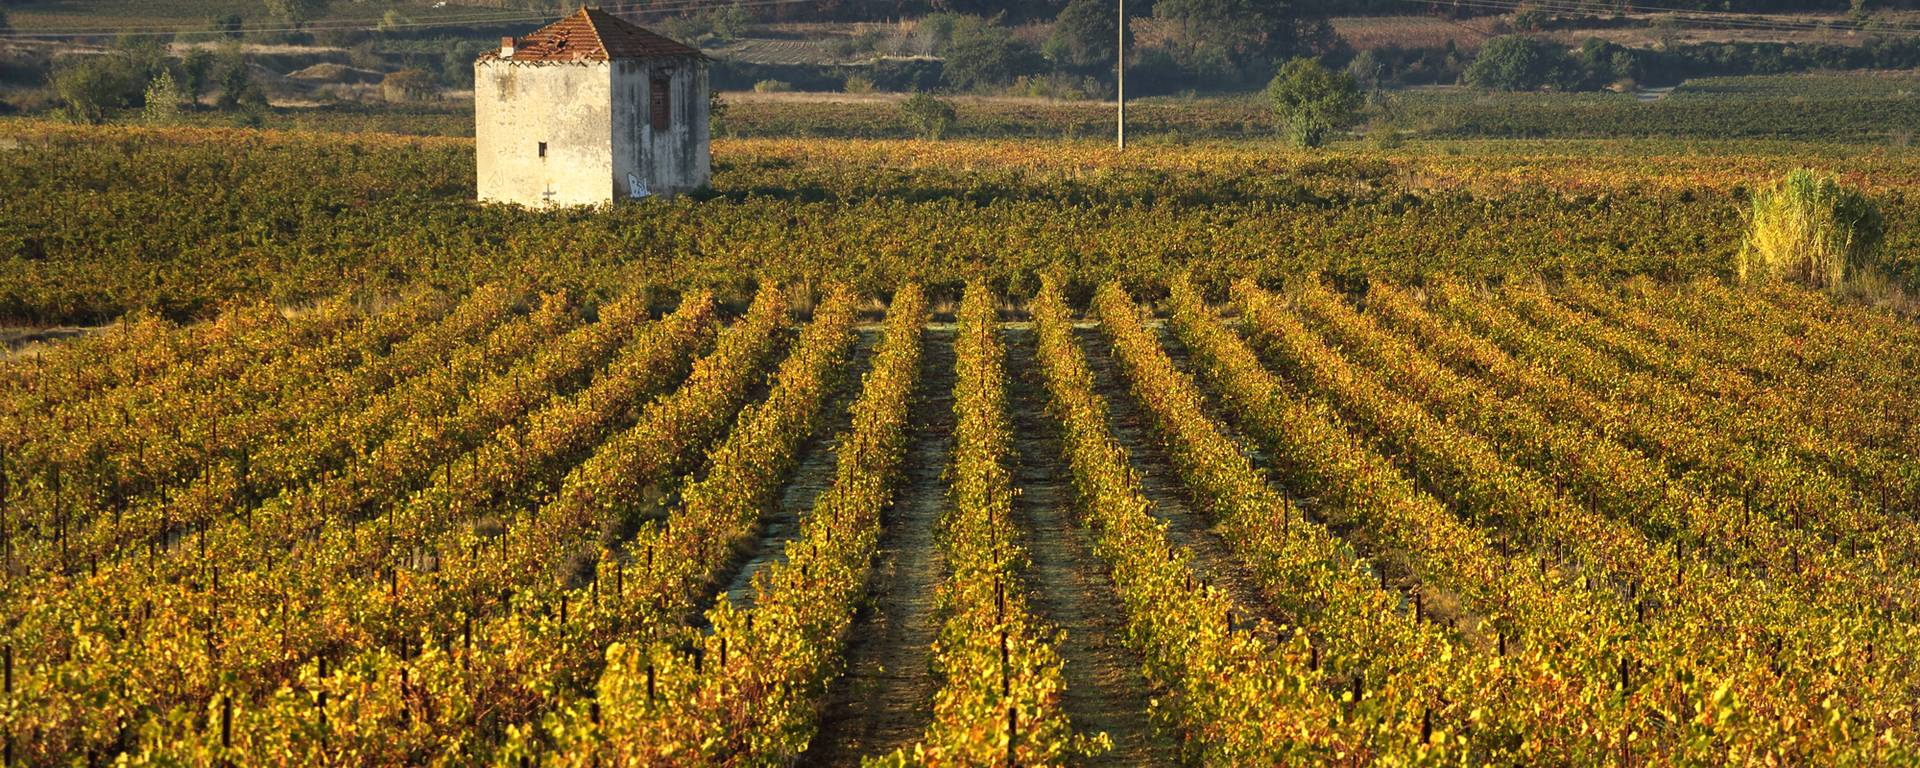 Storehouse and vines in the Côtes de Thongue ©G.Souche